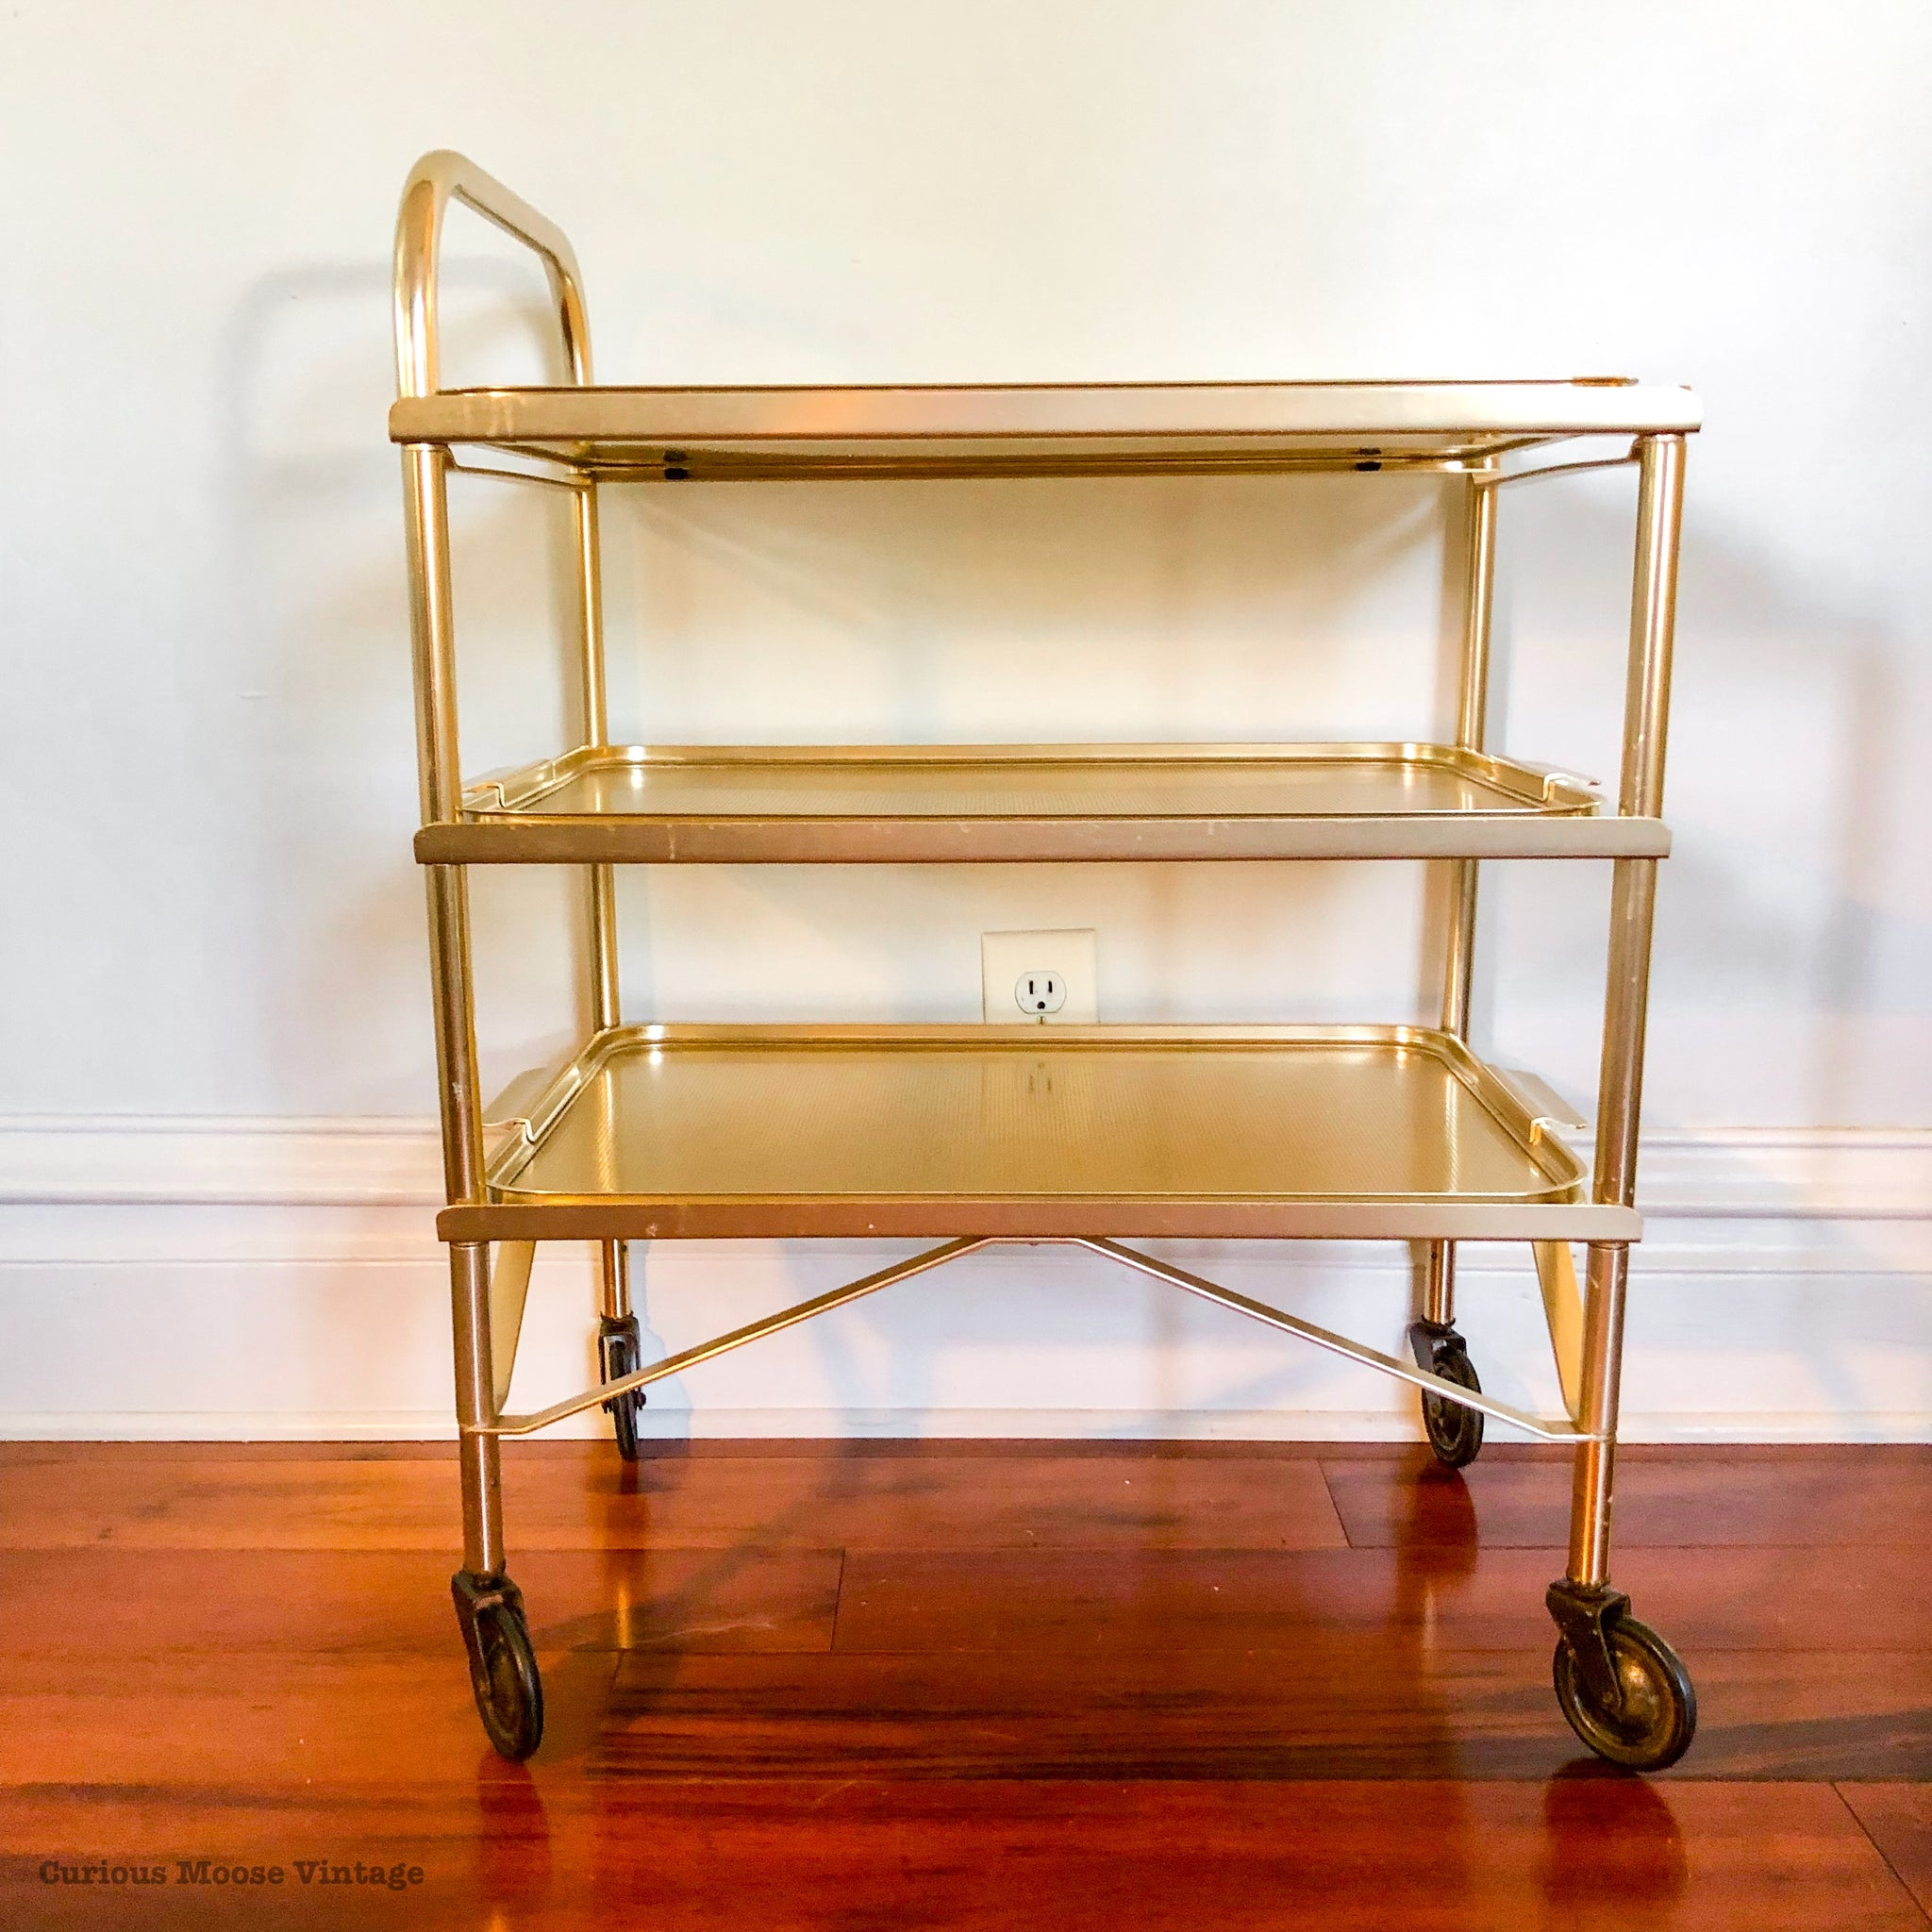 Vintage Gold 3 Tier Hotel Serving Bar Cart on Wheels with Removable Trays.